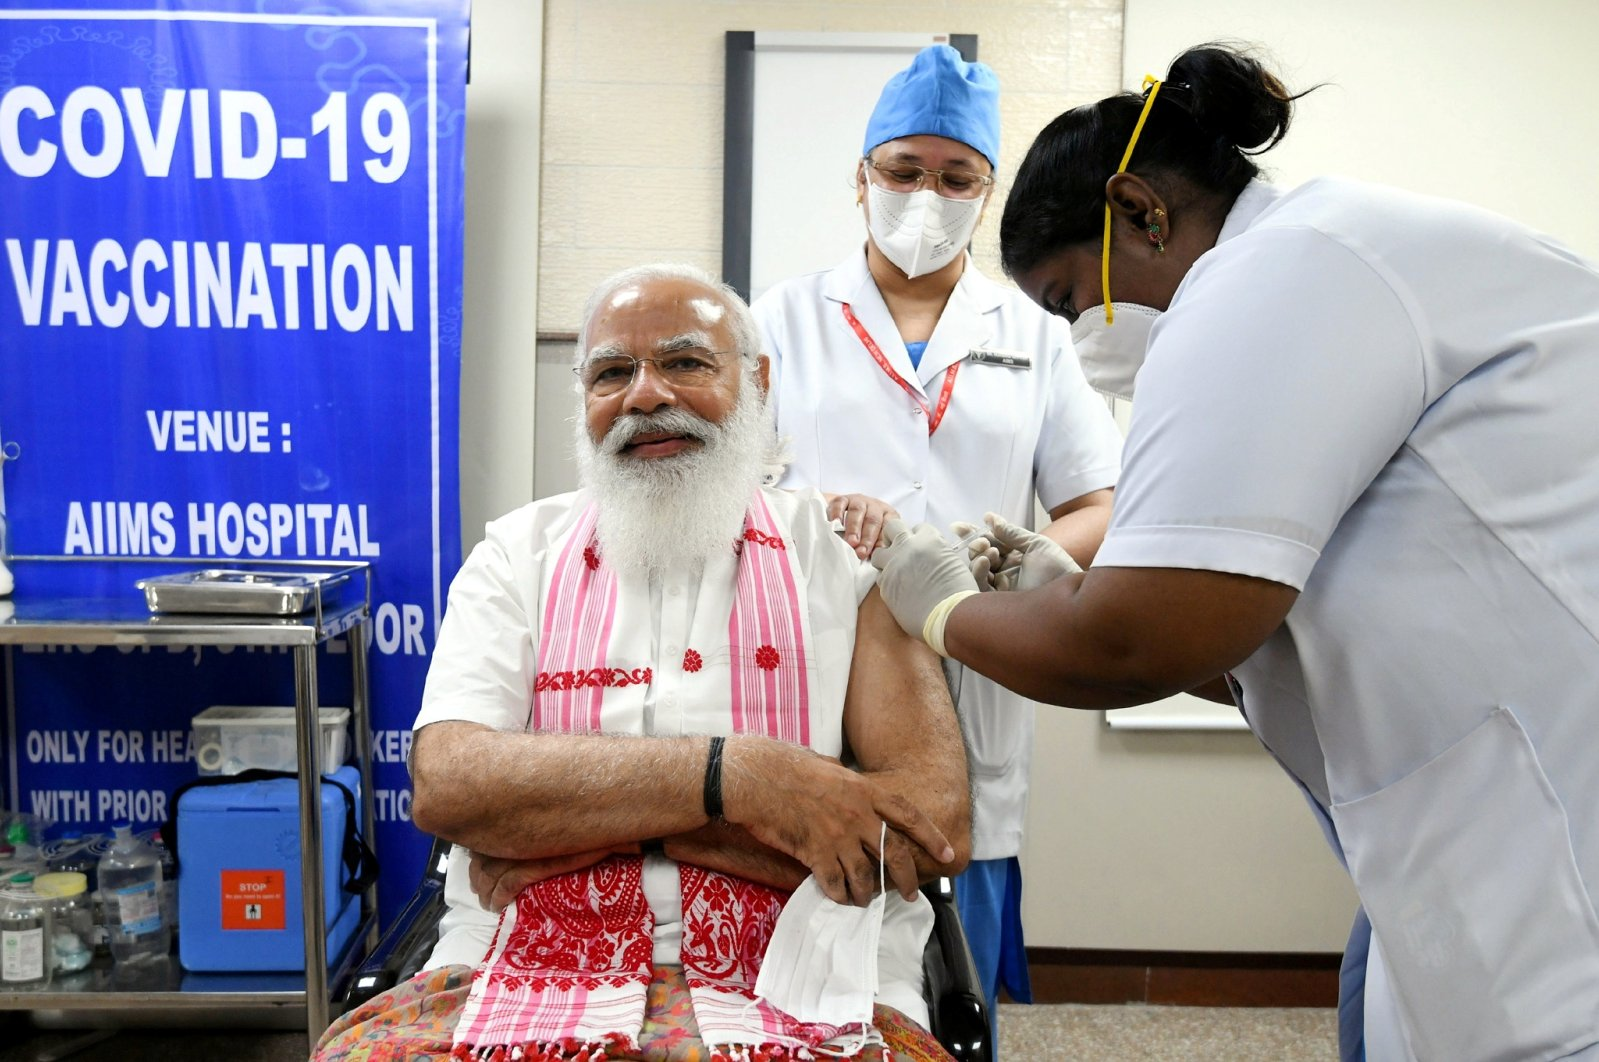 India's Prime Minister Narendra Modi receives a dose of COVAXIN, a coronavirus vaccine developed by India's Bharat Biotech and the state-run Indian Council of Medical Research, at All India Institute of Medical Sciences (AIIMS) hospital in New Delhi, India, March 1, 2021. (Reuters Photo)